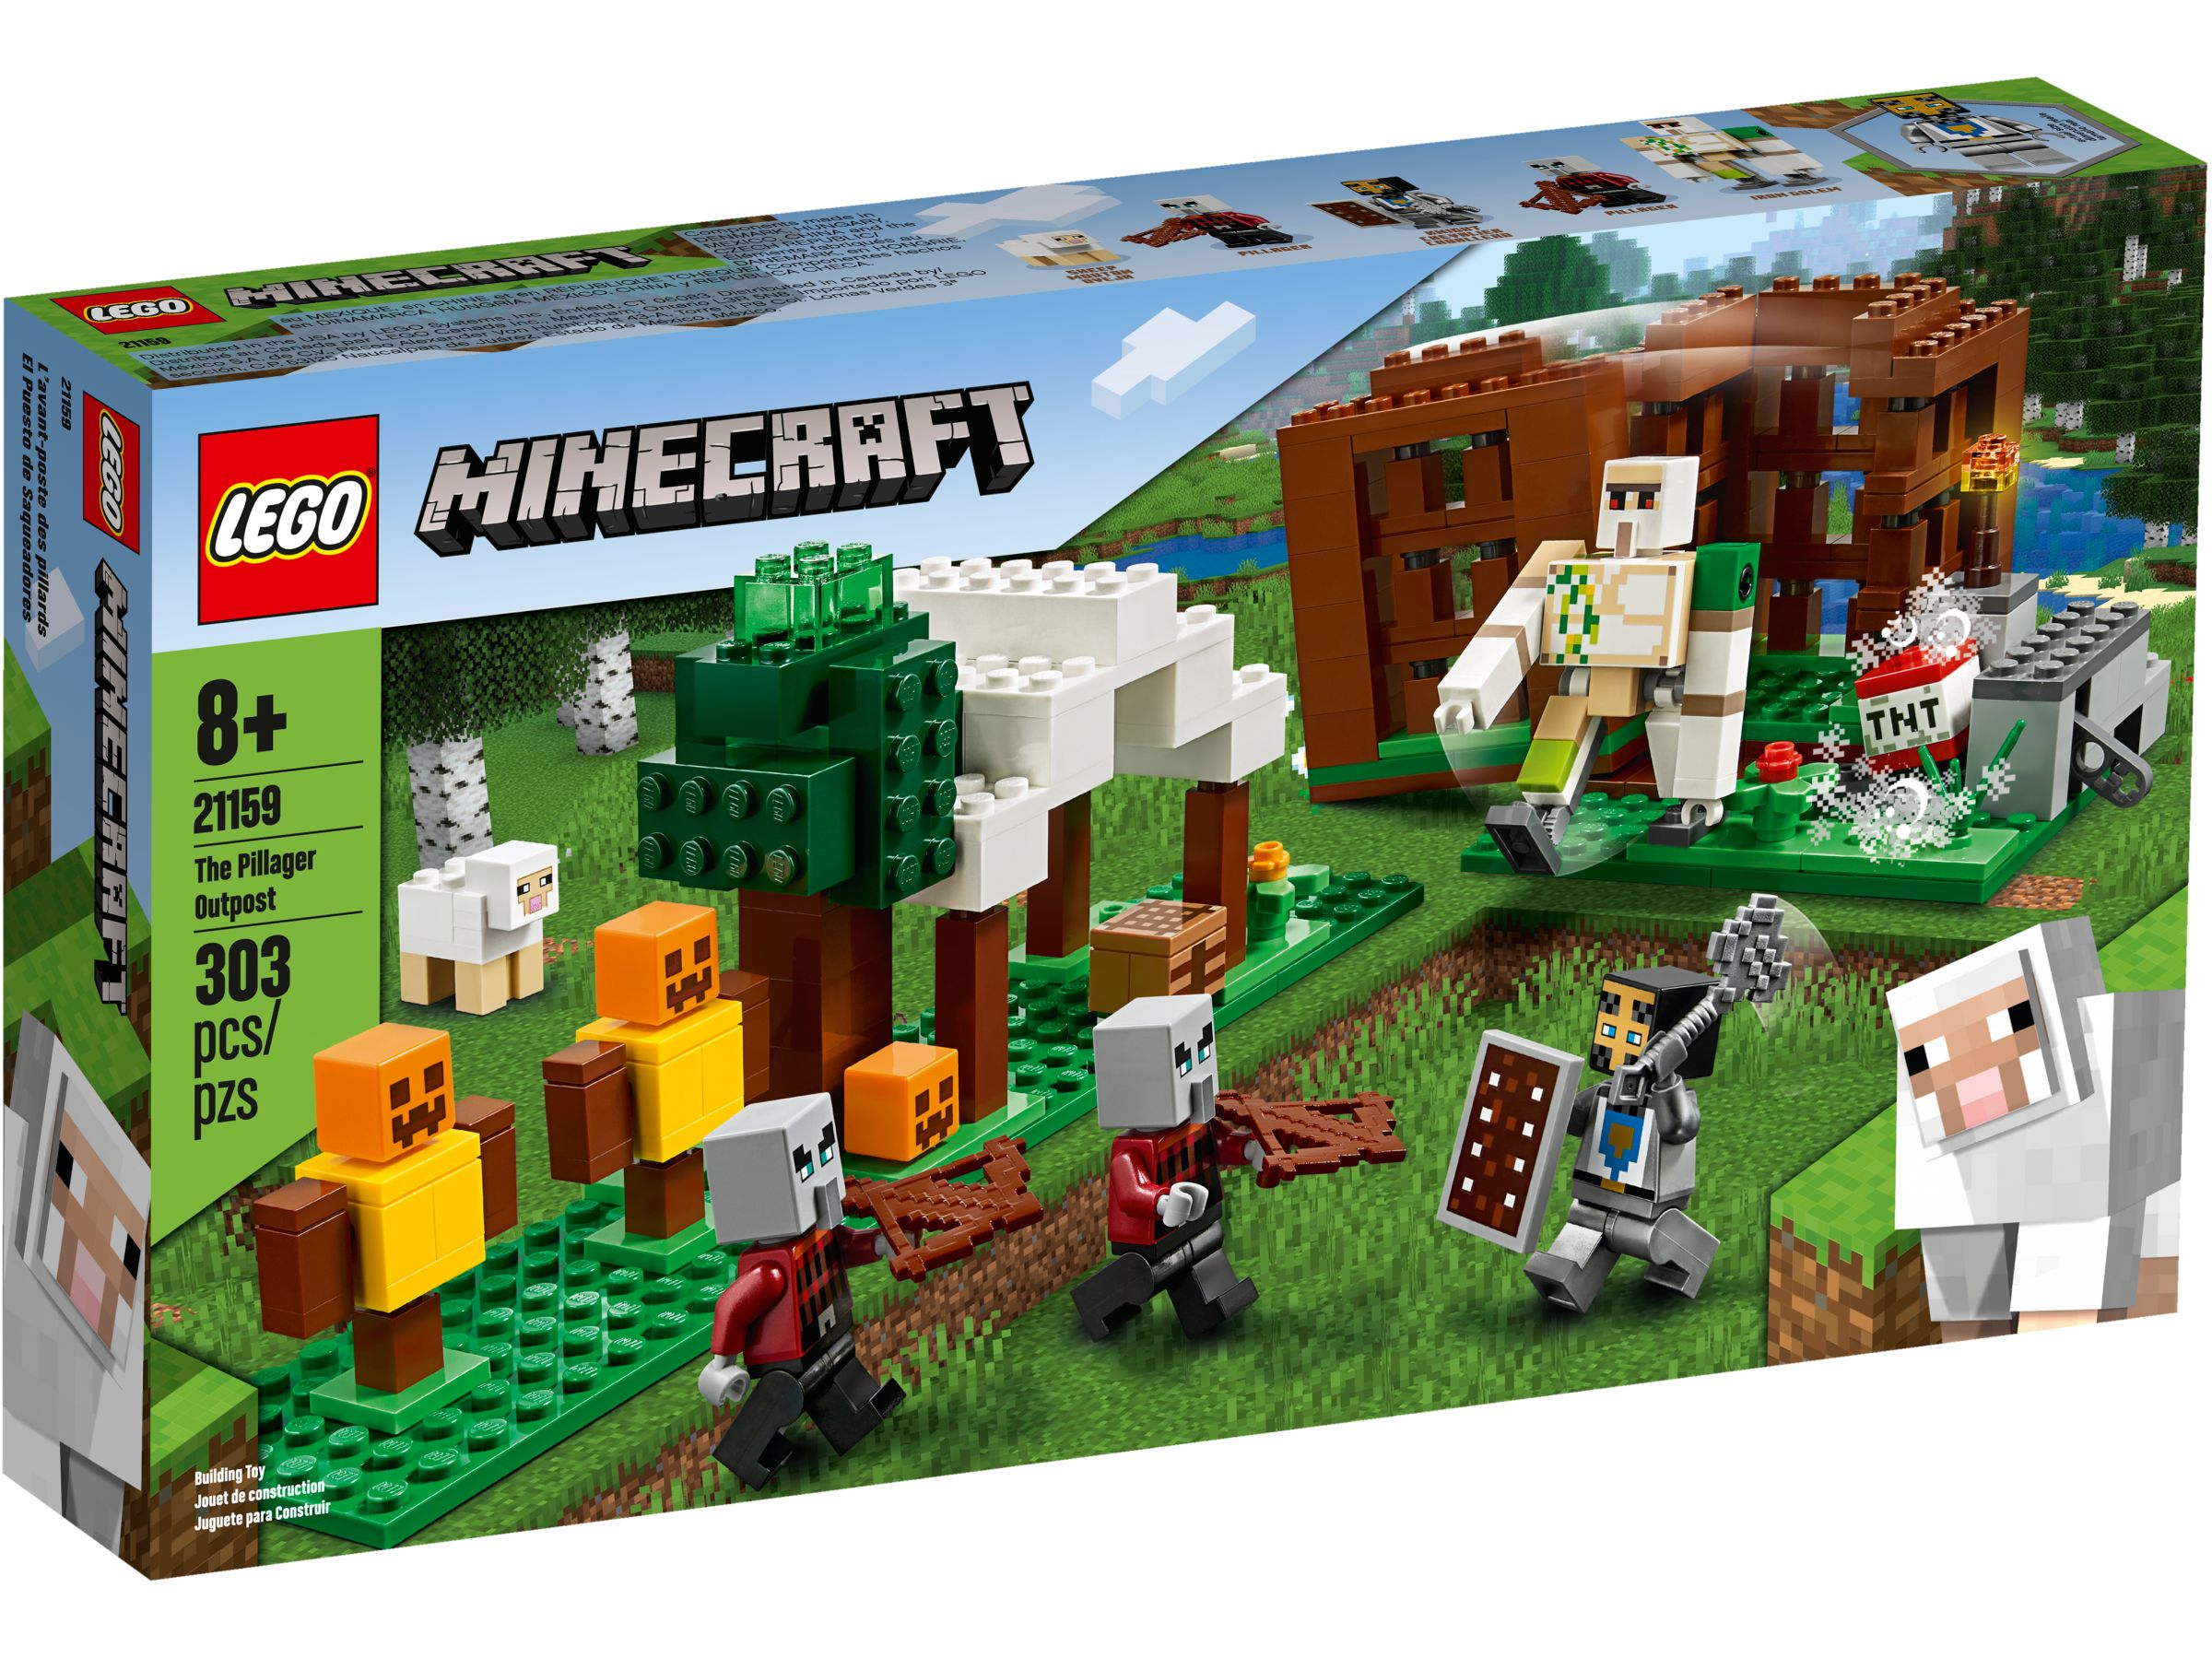 LEGO Minecraft 21159 The Raider Outpost LEGO_21159_alt1.jpg